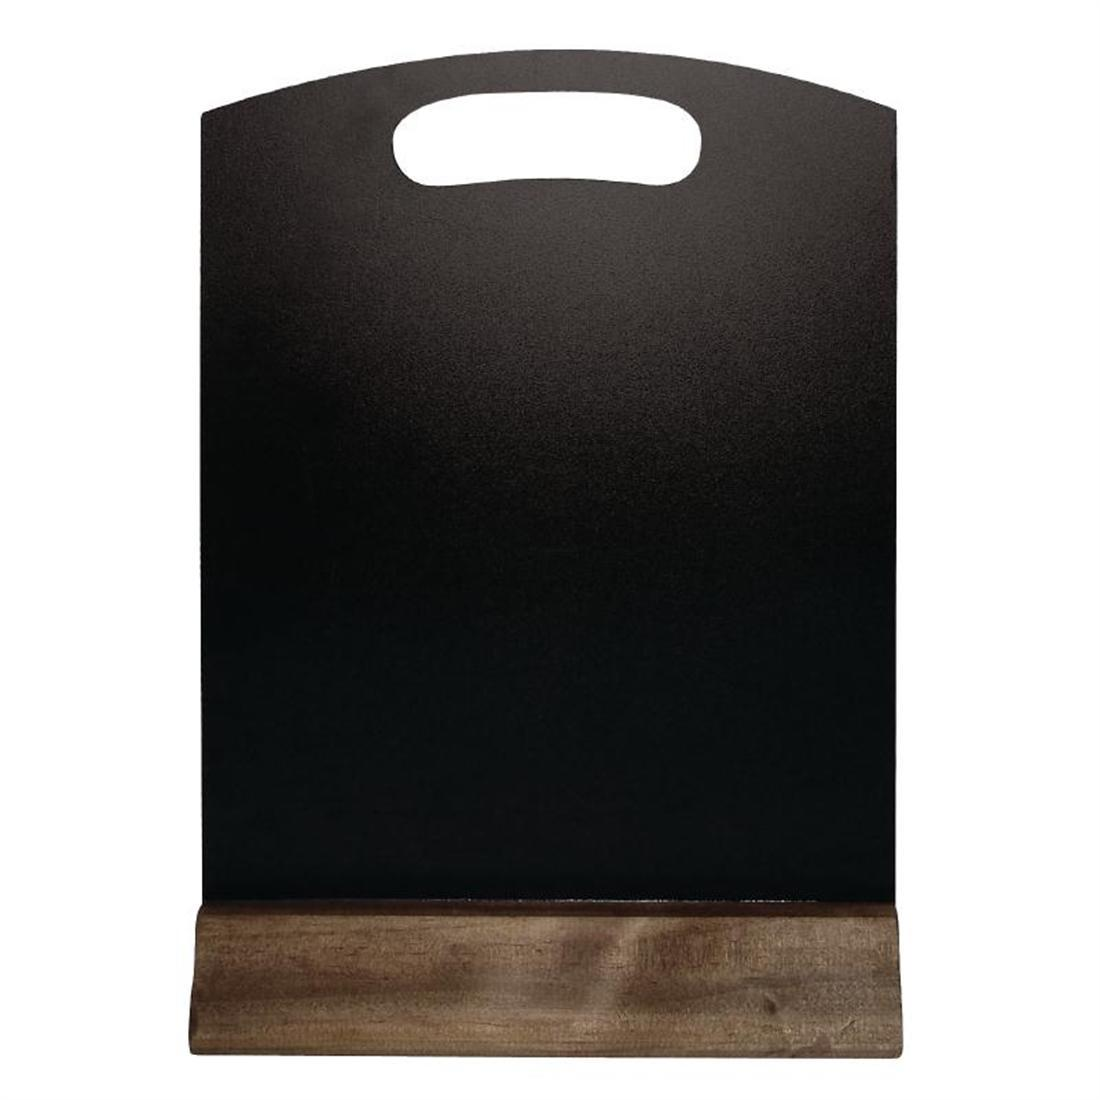 Olympia Freestanding Table Top Blackboard 225 x 150mm